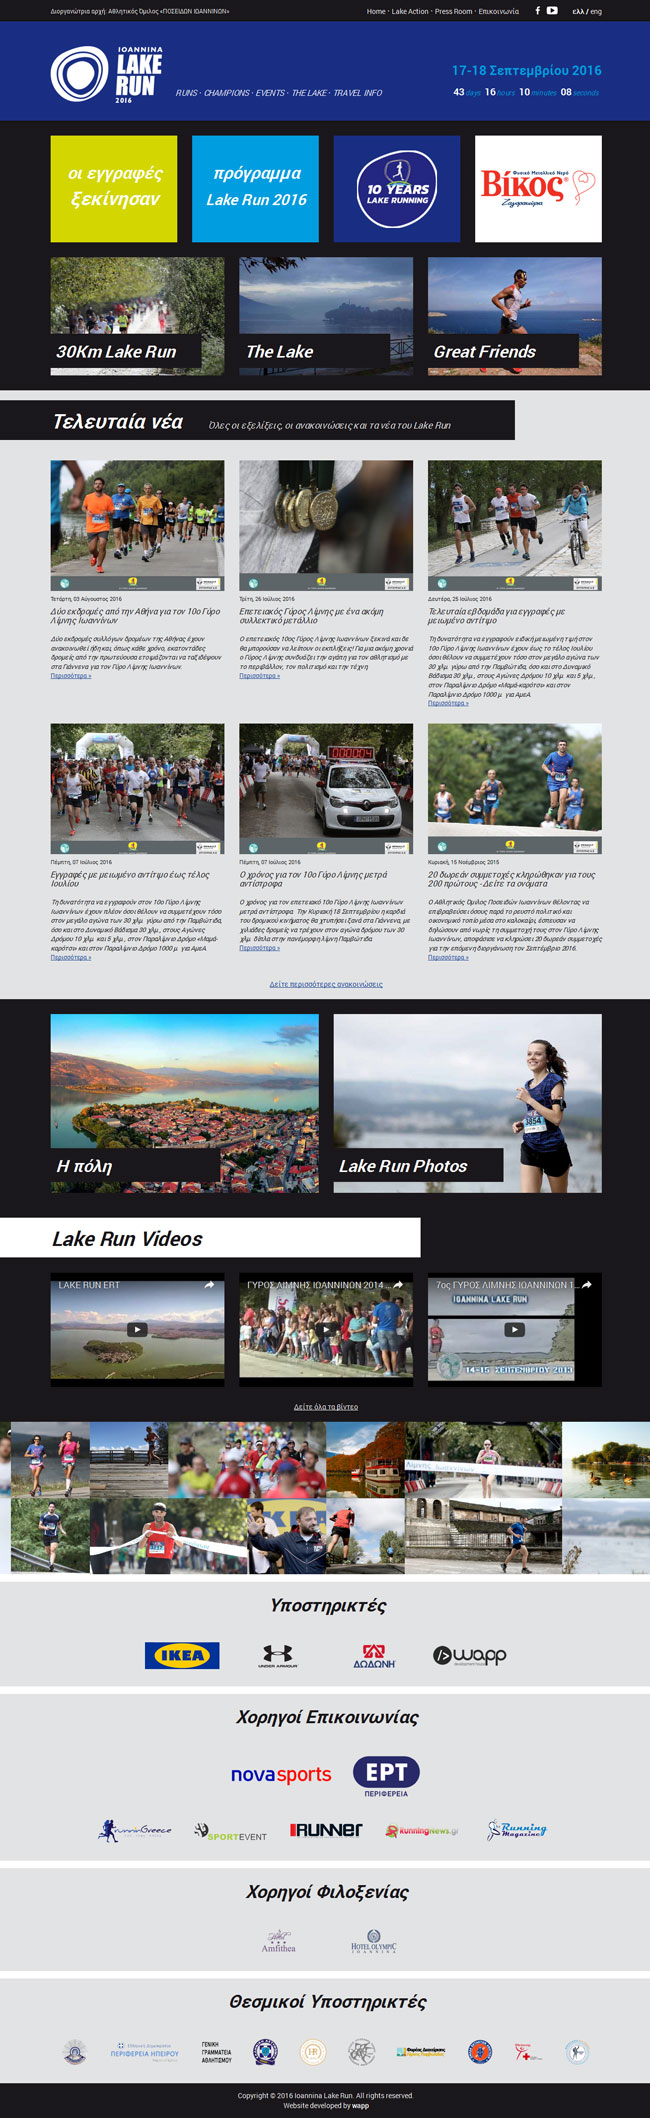 Website for Ioannina Lake Run in Epirus